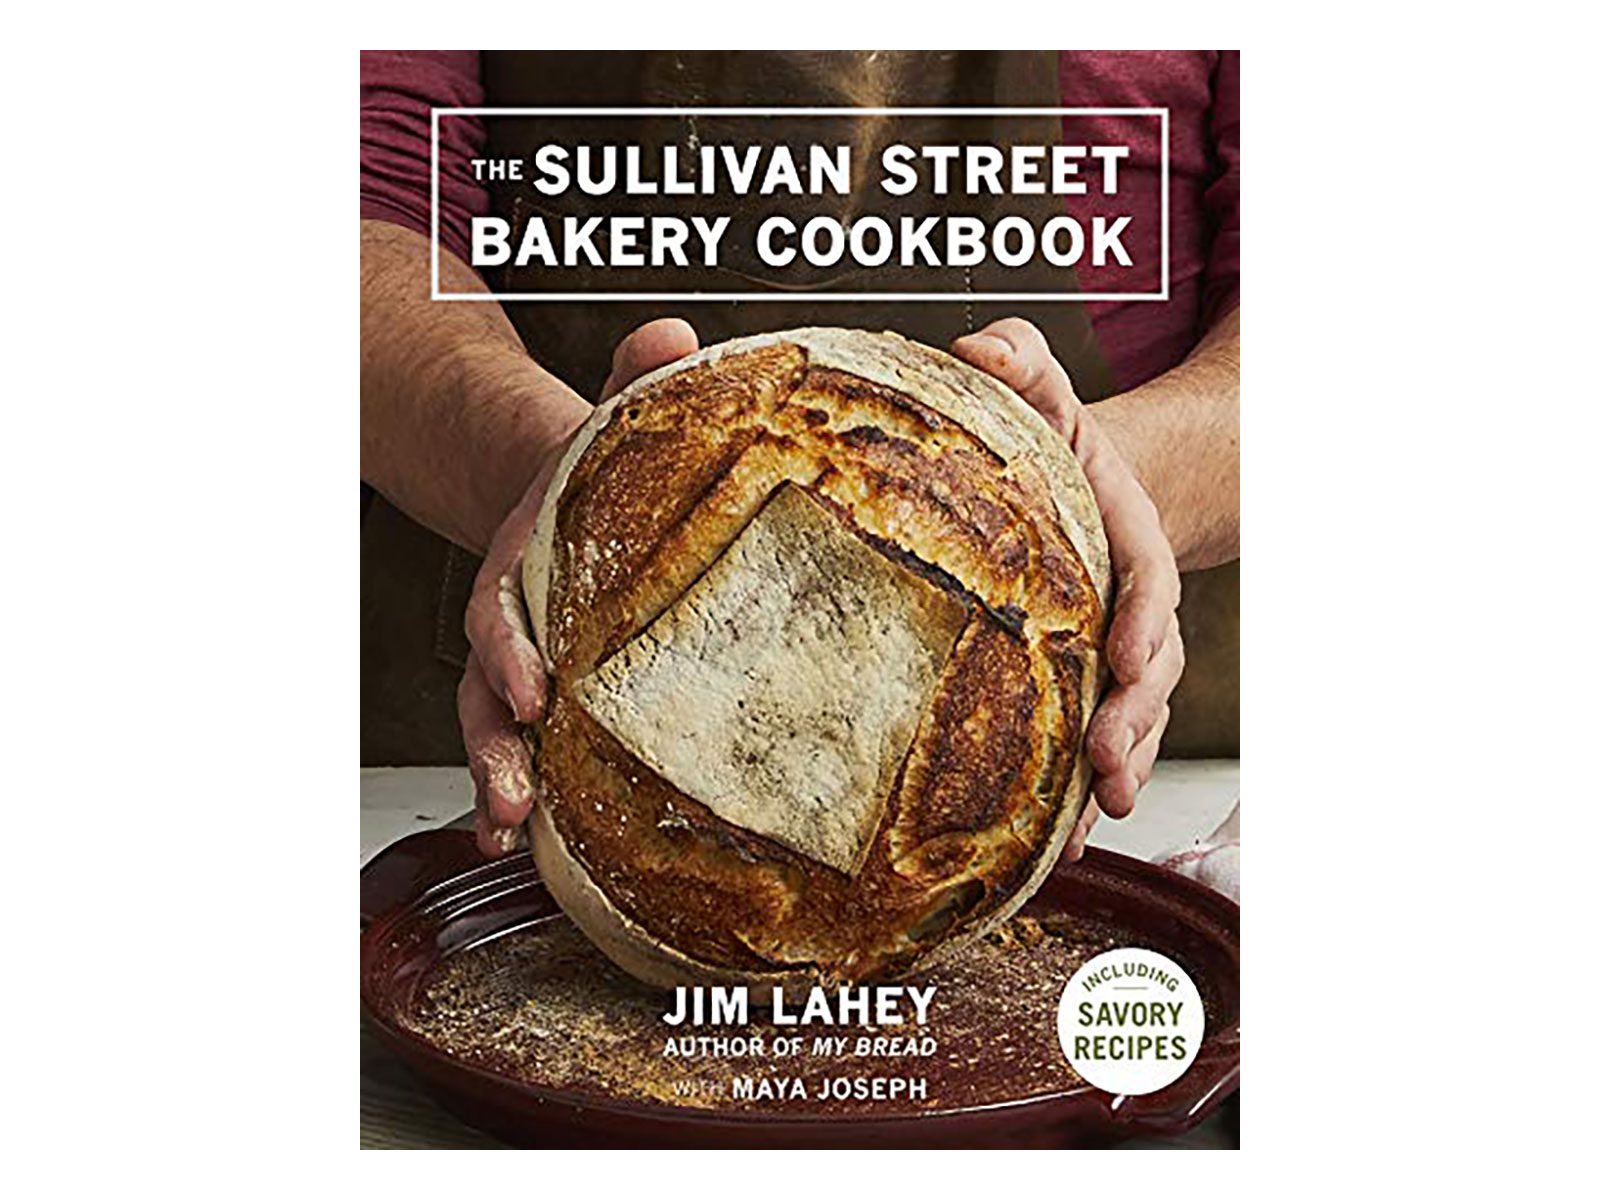 Best Baking Cookbooks The Sullivan Street Bakery Cookbook